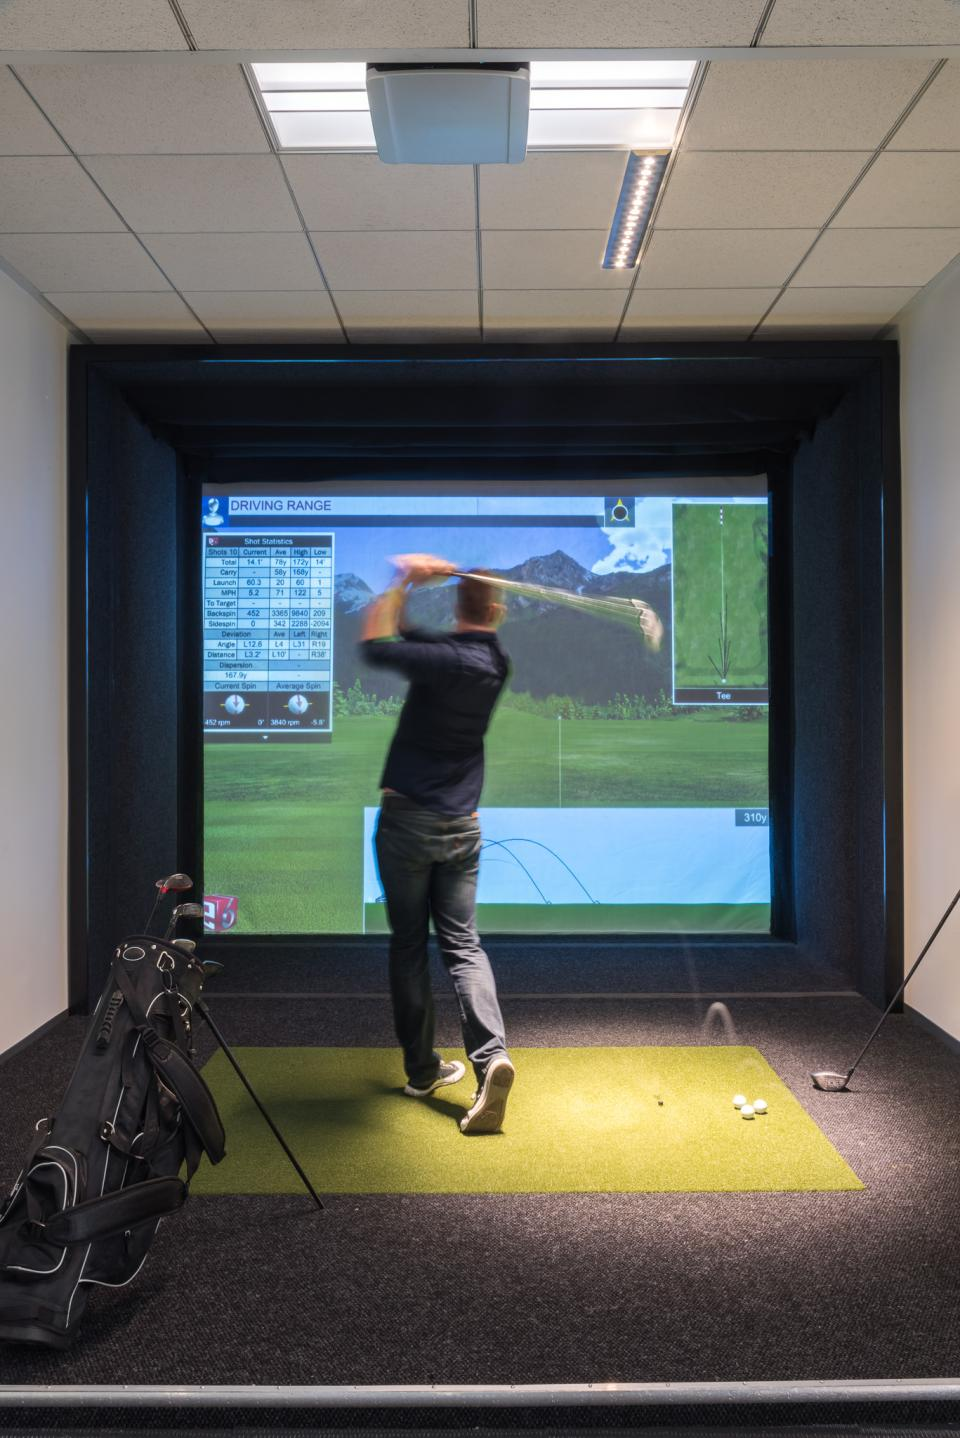 Our LA HQ has a state-of-the-art golf simulator